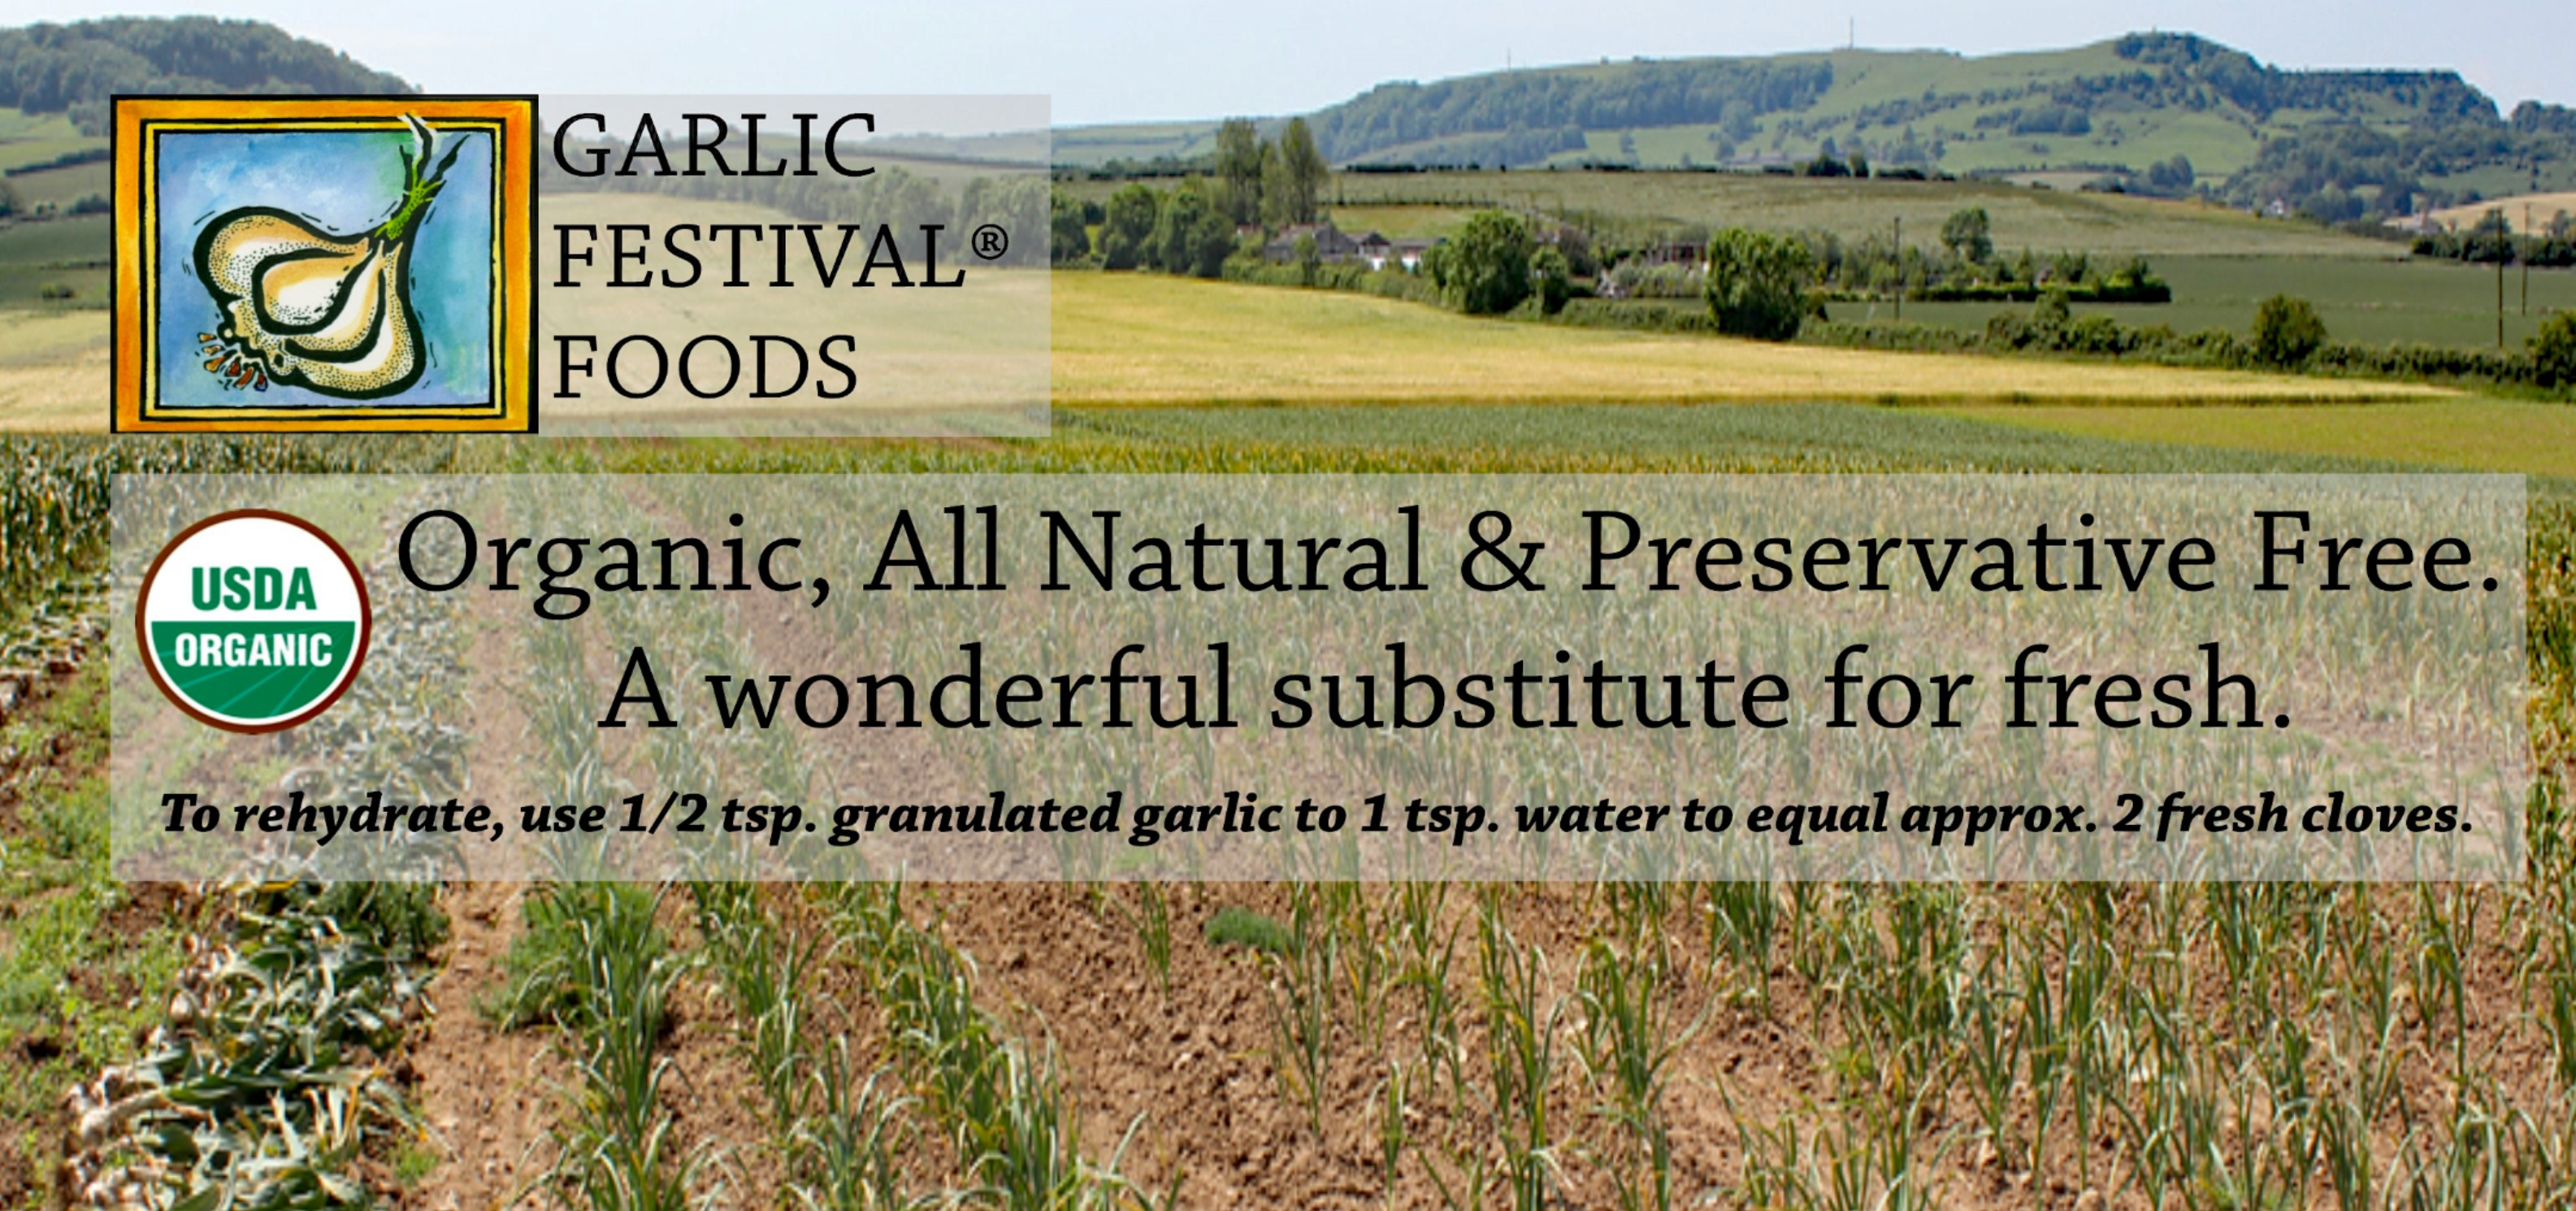 Garlic Festival Foods Organic Garlic